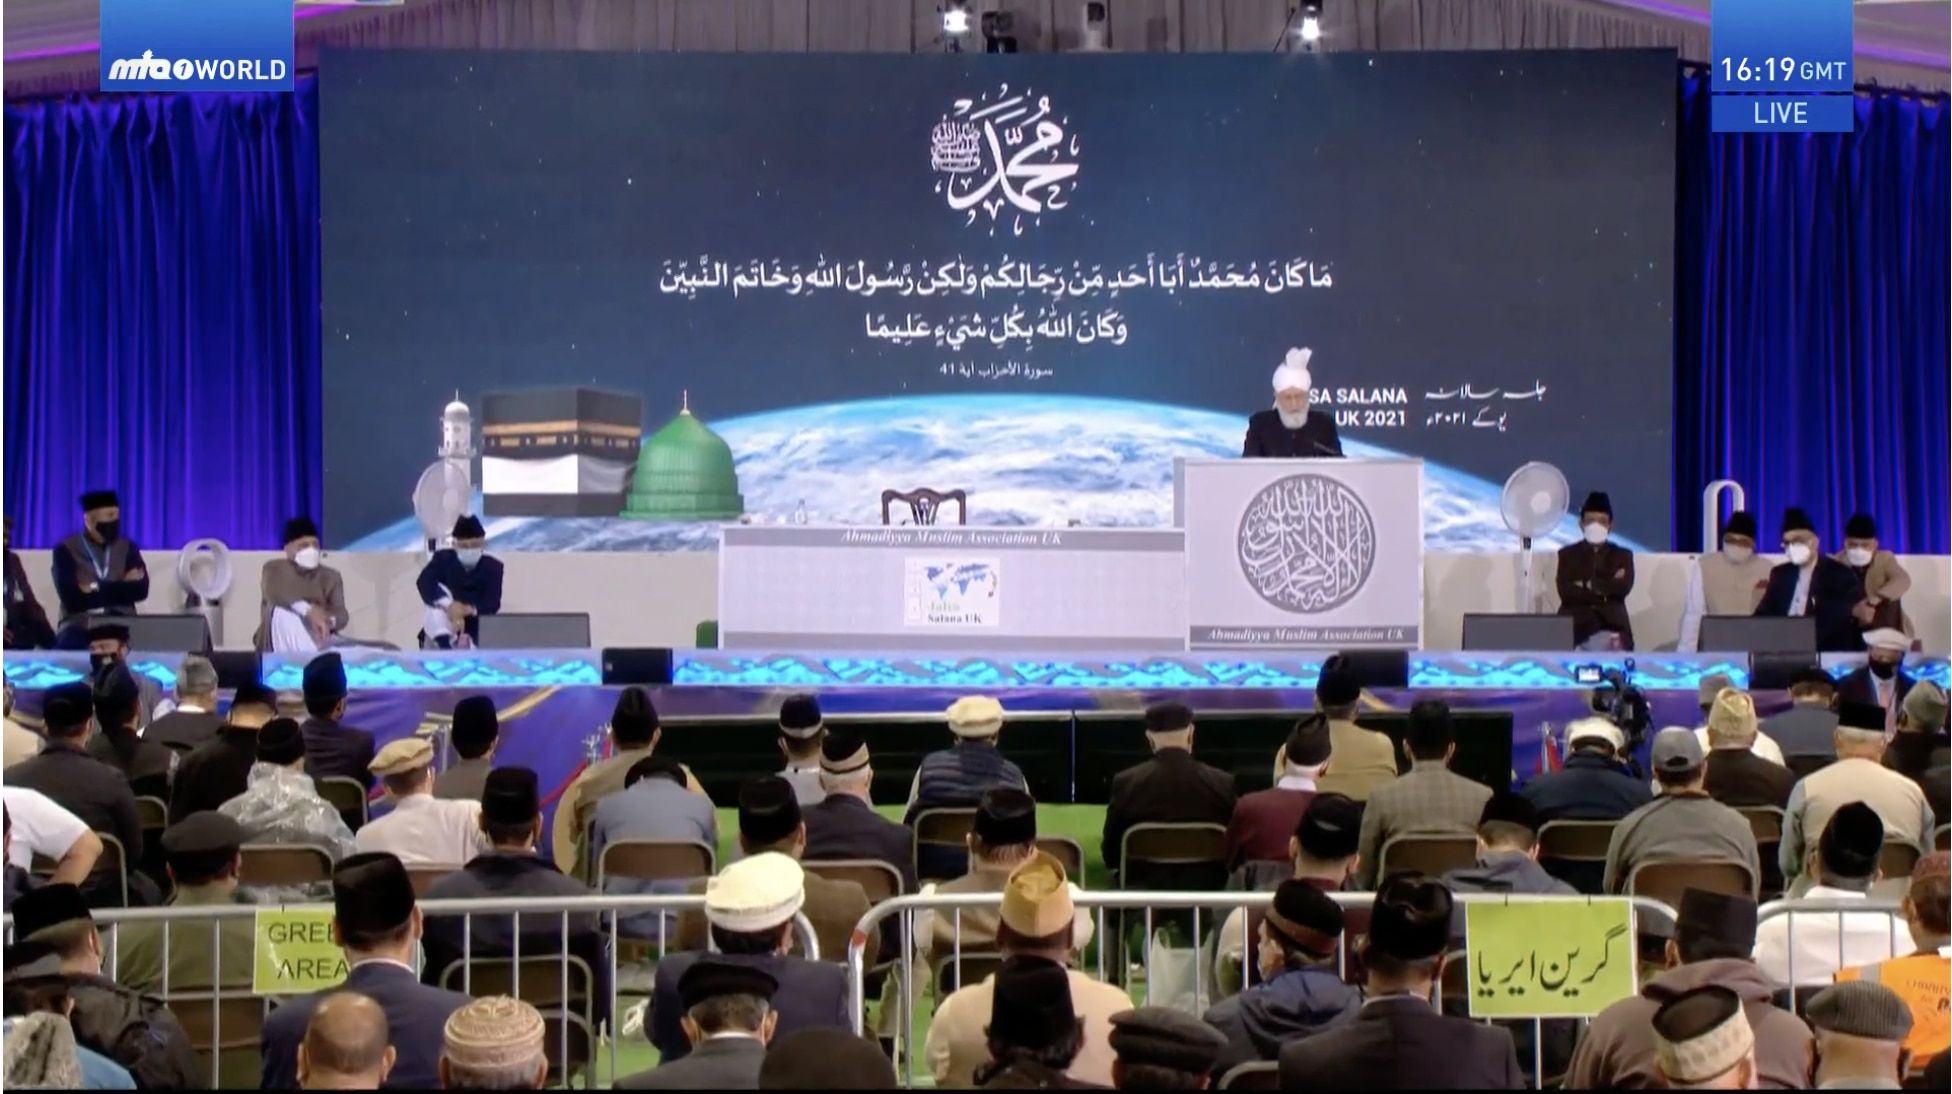 Address at the Final Session of Jalsa Salana UK 2021: 'Fulfilling the Rights of Others' (Summary)